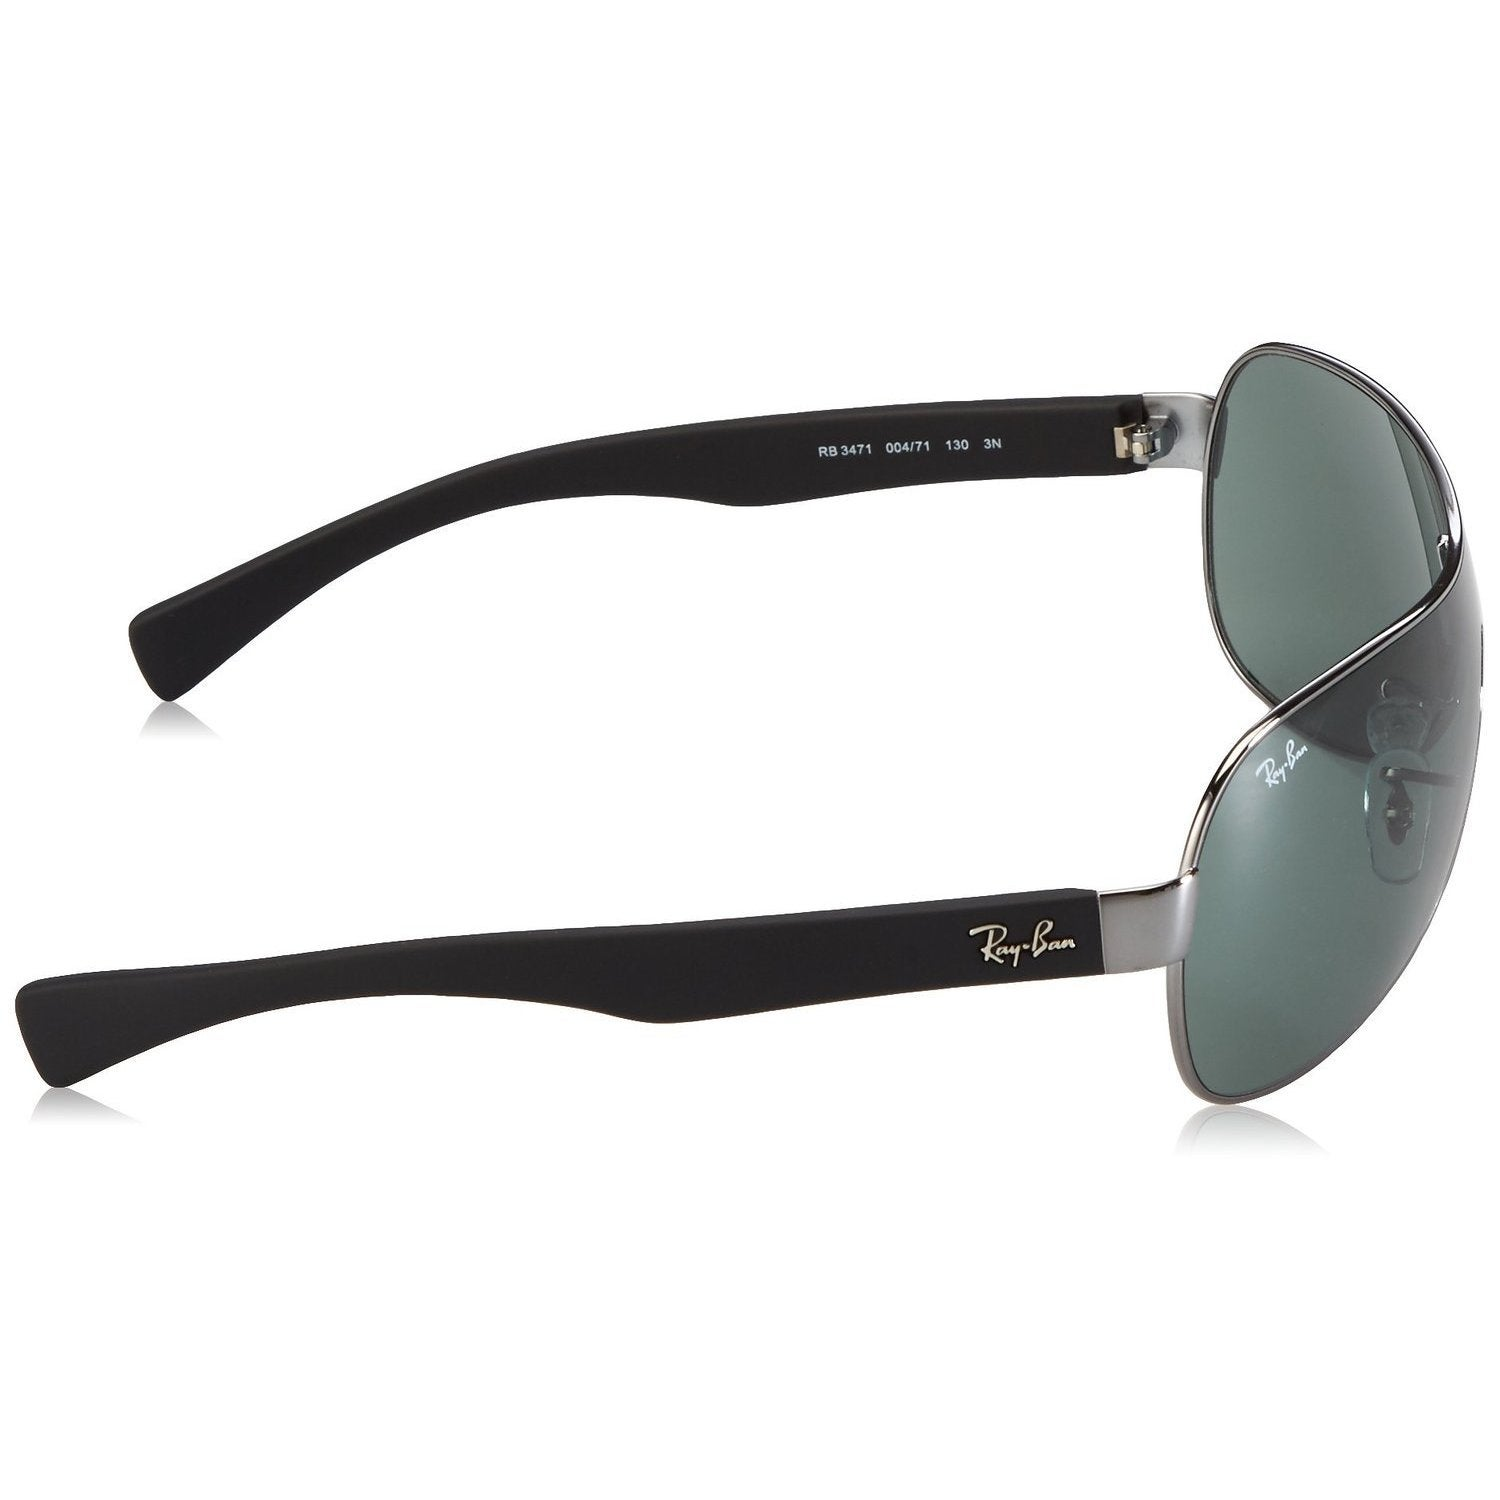 327a19b953c Shop Ray-Ban RB3471 004 71 Gunmetal Black Frame Green Classic 32mm Lens  Sunglasses - Free Shipping Today - Overstock - 14328115